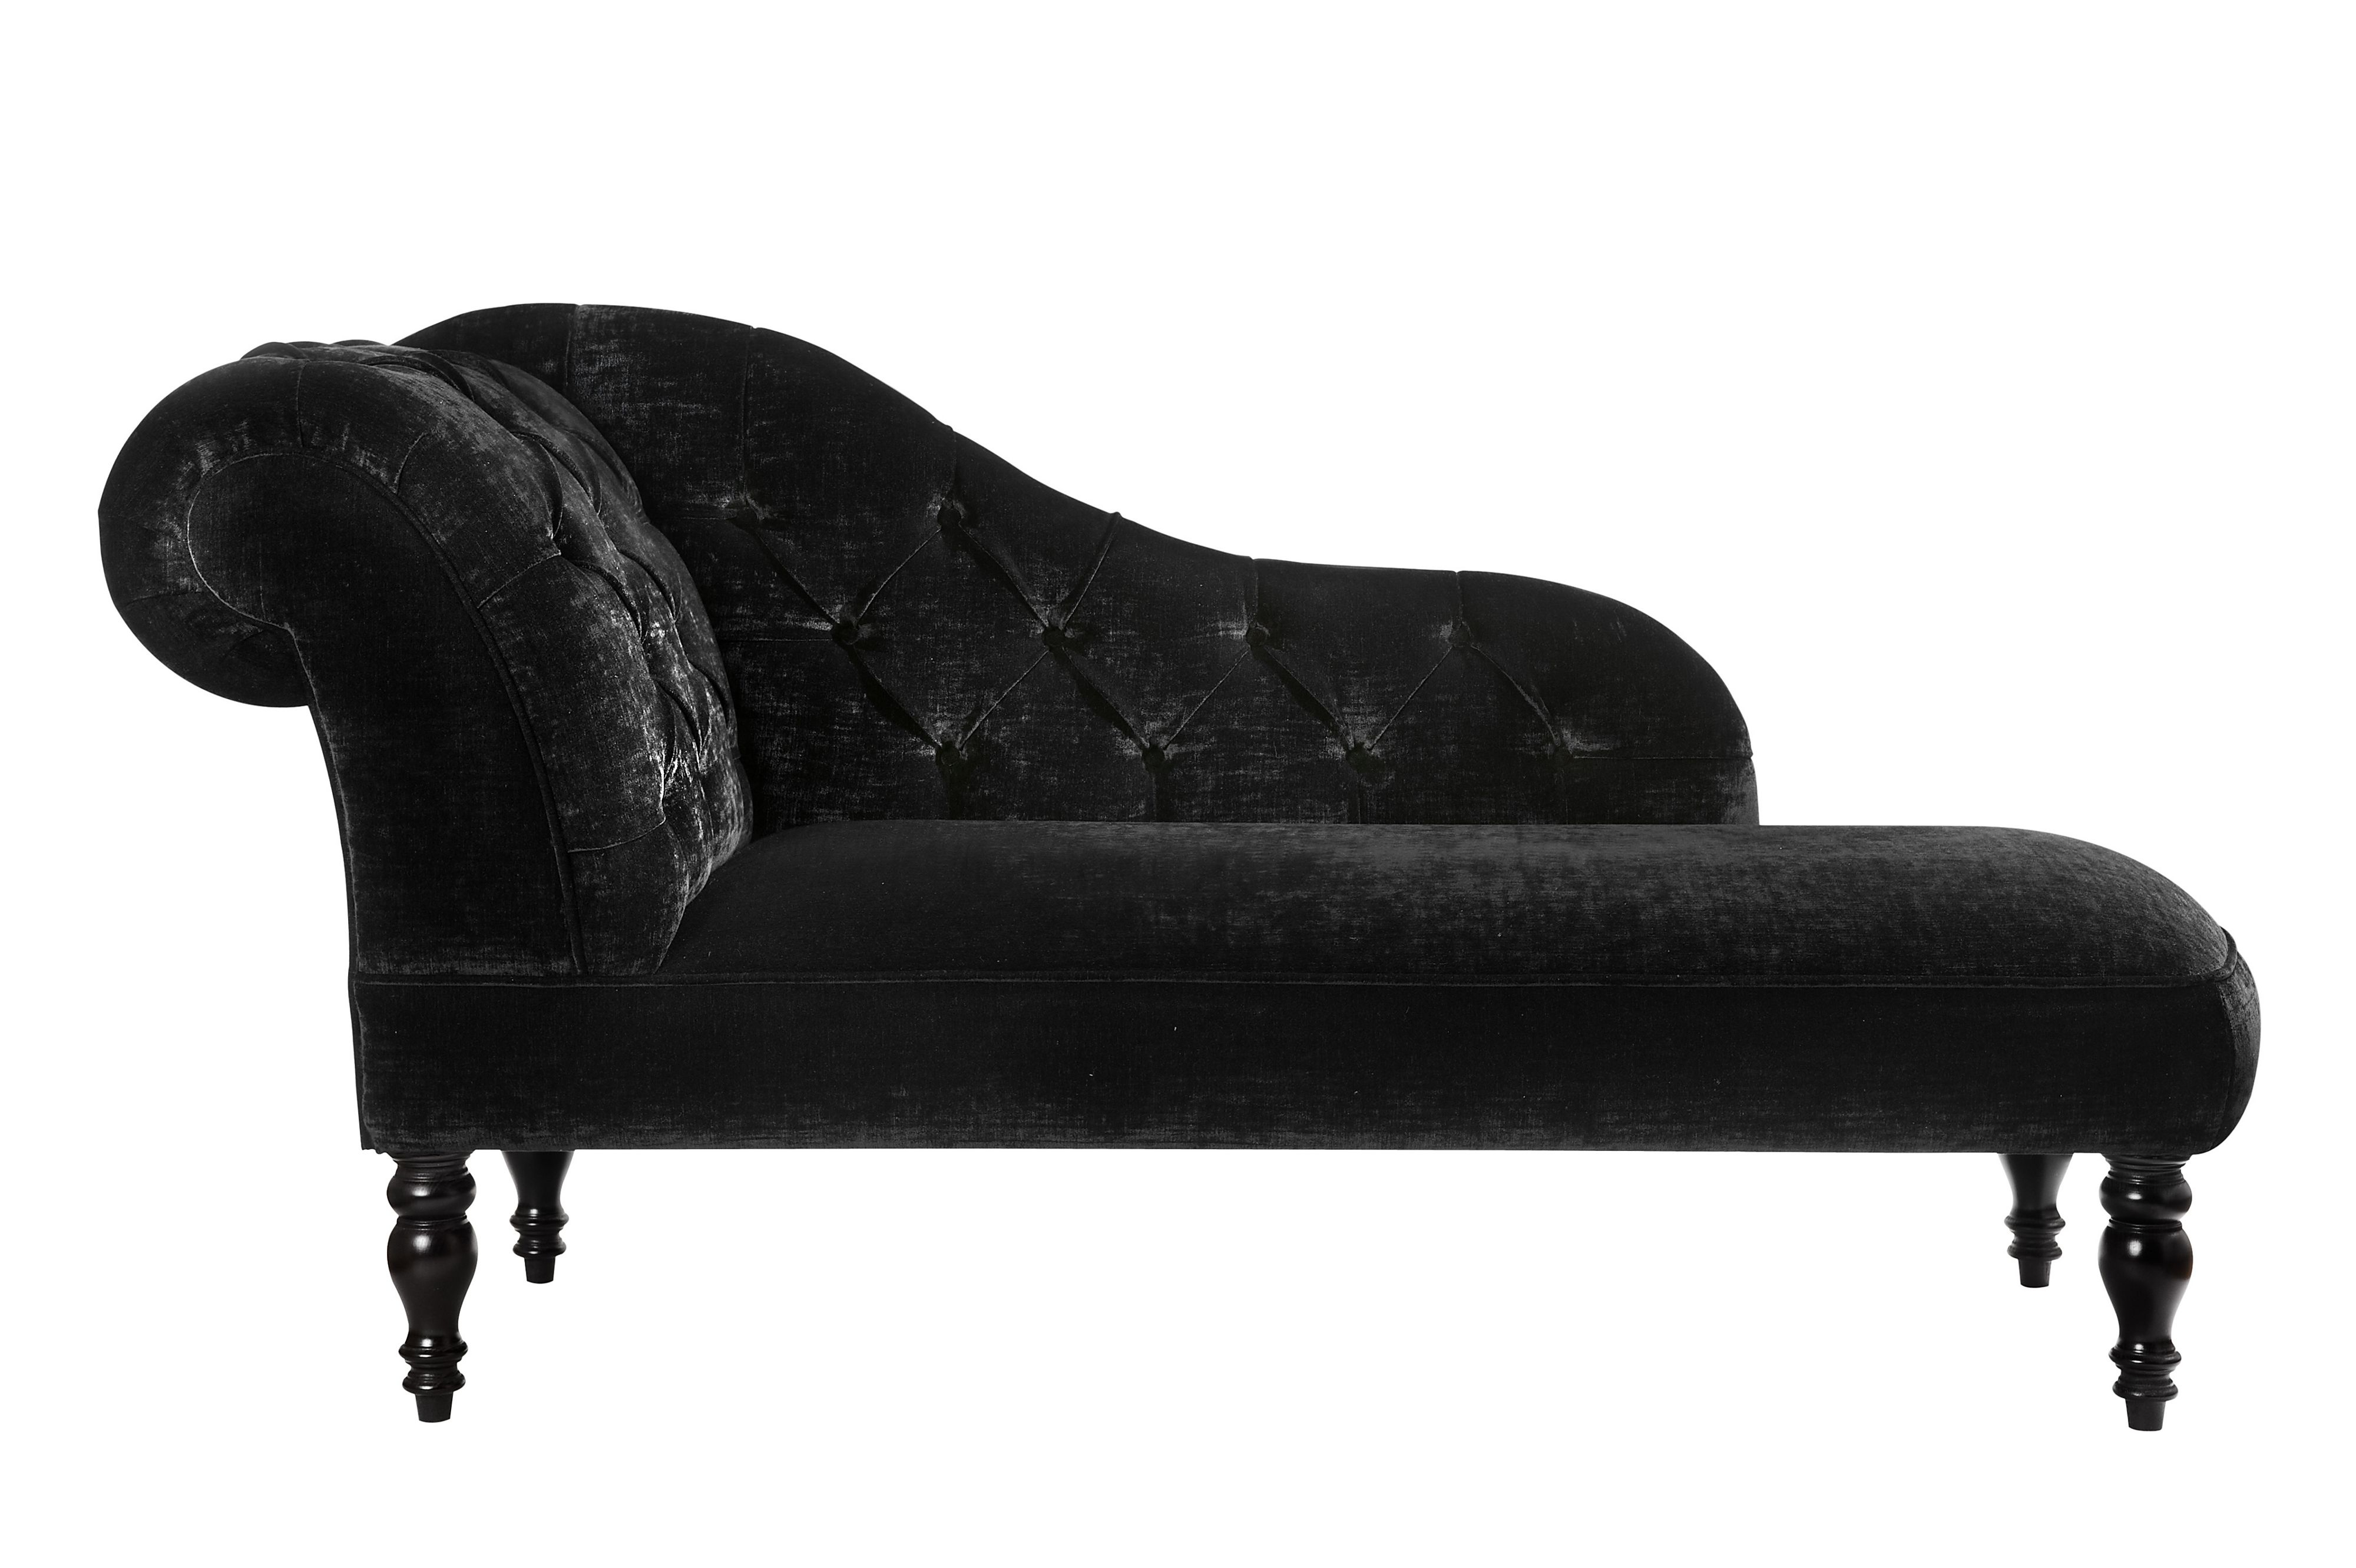 Venice Bedroom Chaise